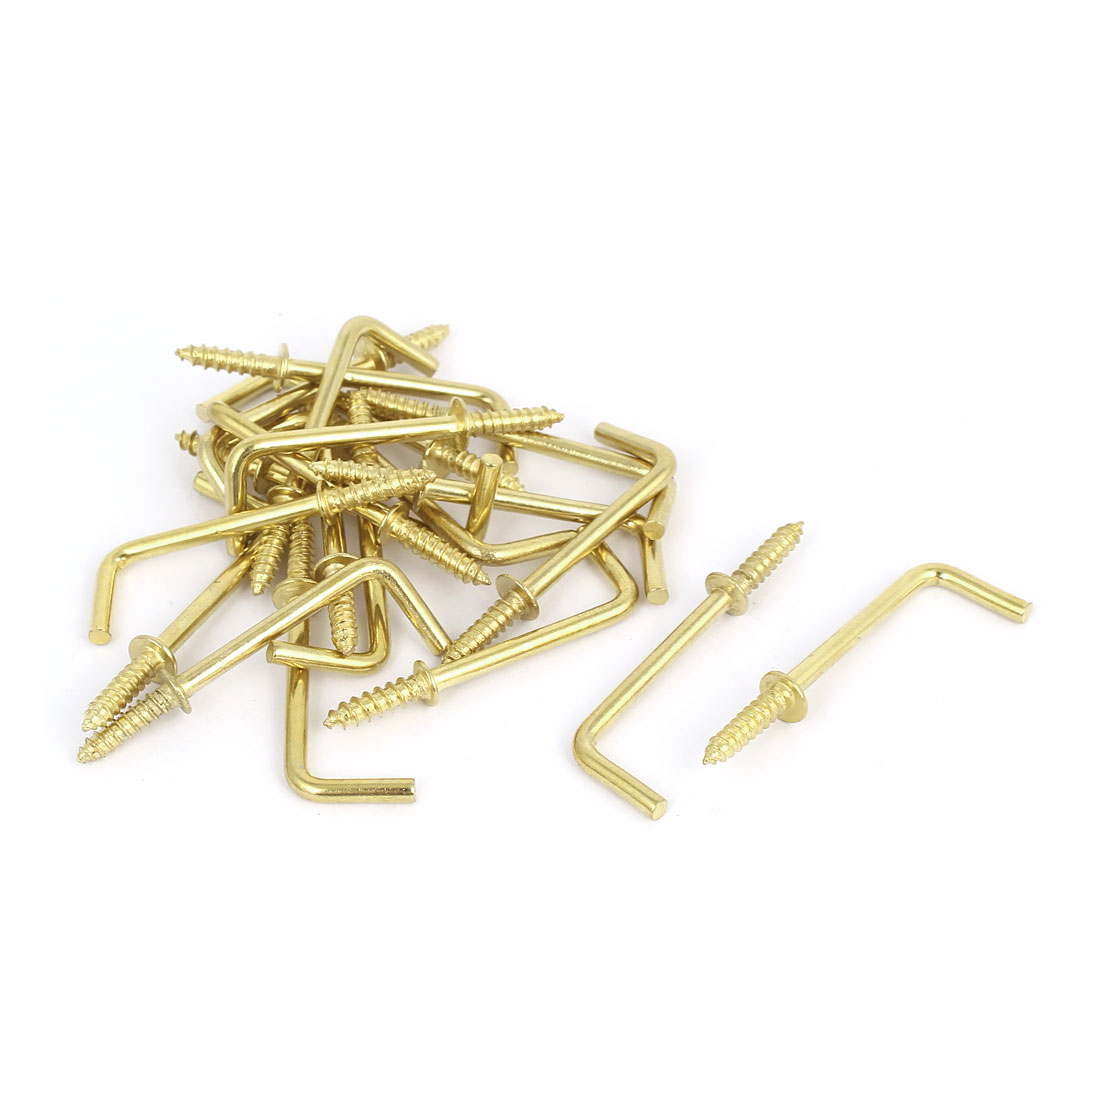 47mm x 16mm x 3mm L Shaped Shoulder Straight Dresser Cup Hook Hanger 20PCS